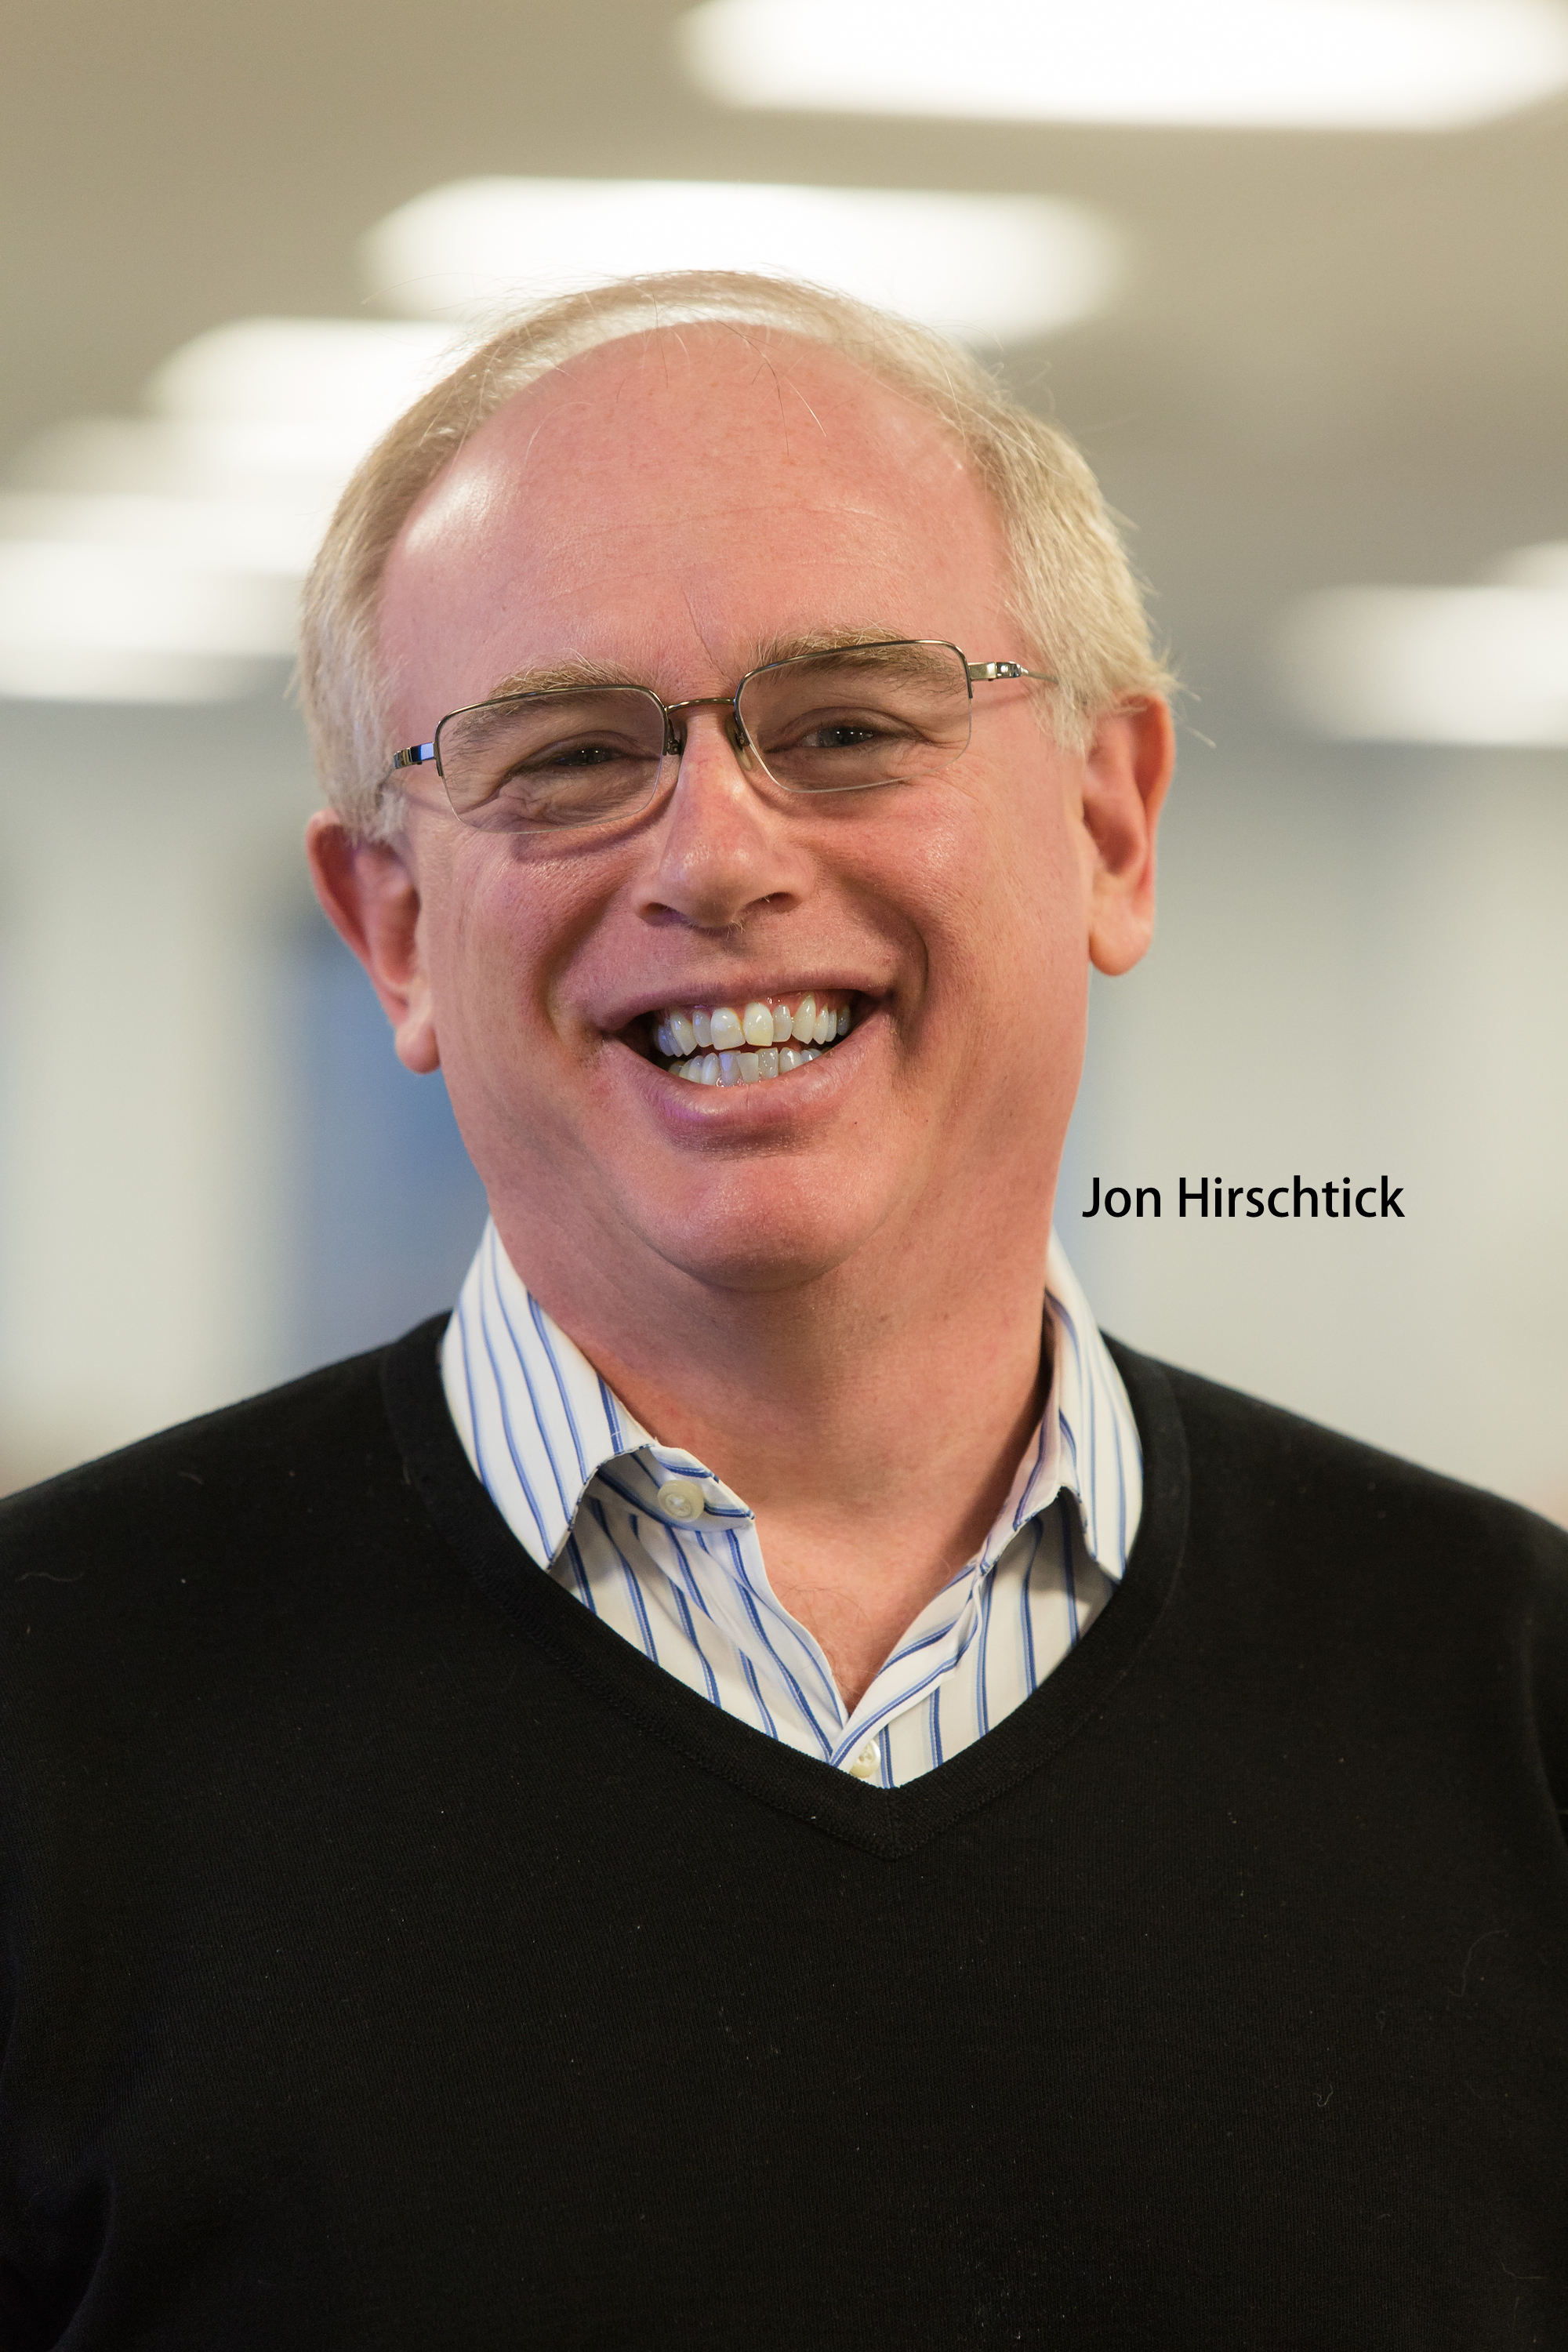 Jon Hirschtick, Co-founder and CEO